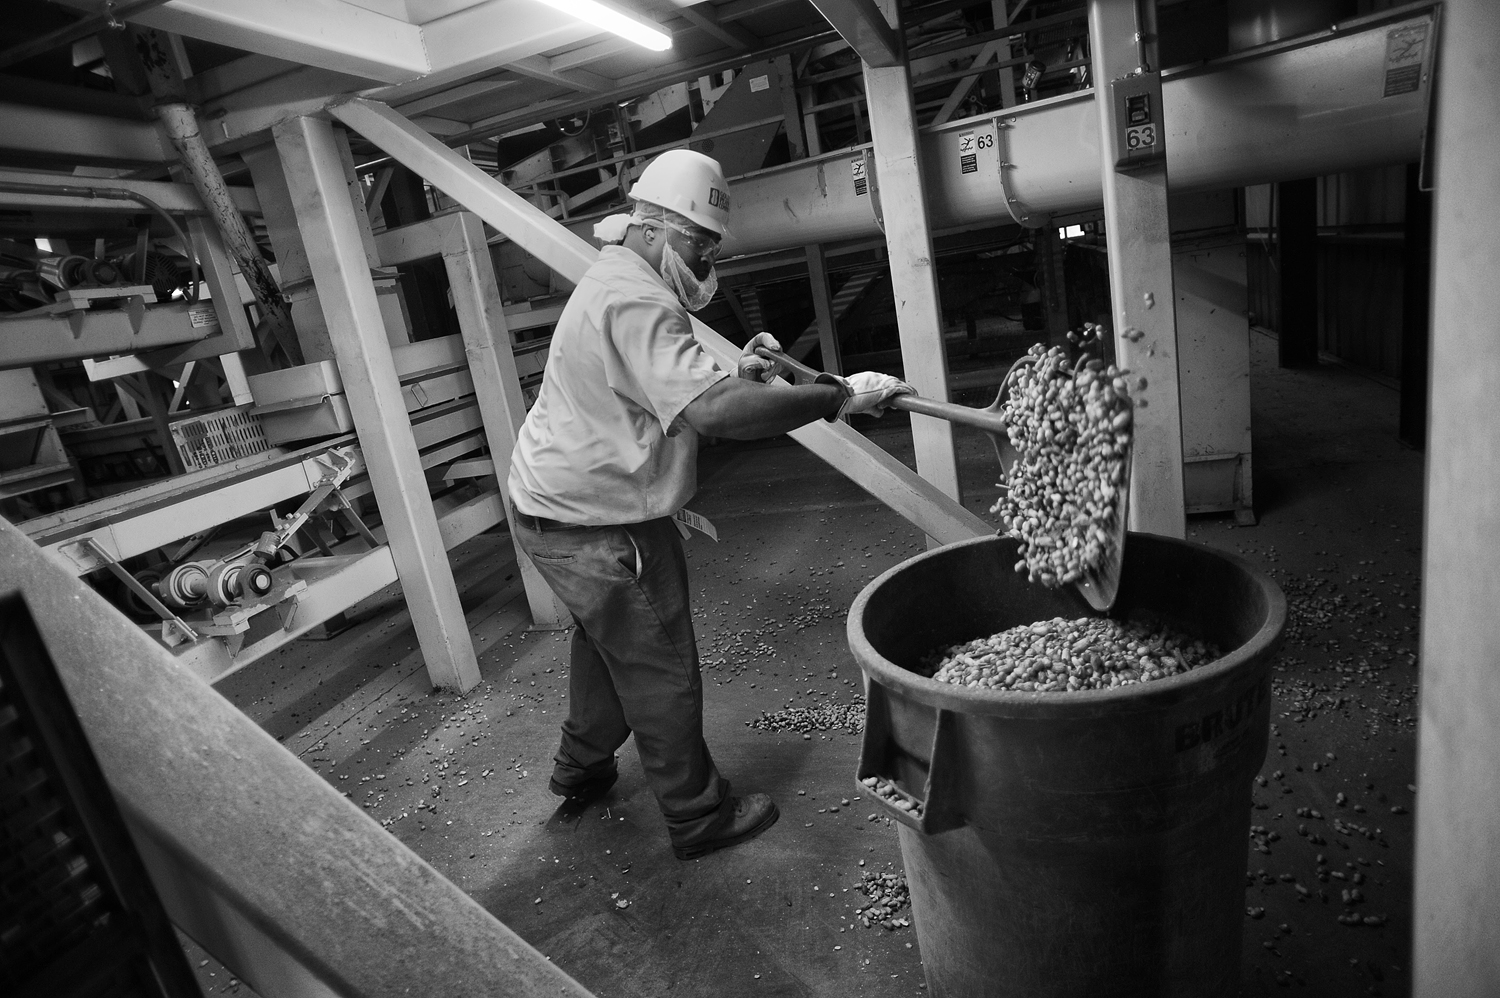 Prentice Jackson, an employee of Golden Peanut Company, shovels spilled peanuts into a container at the company's shelling facility in late October of 2011.